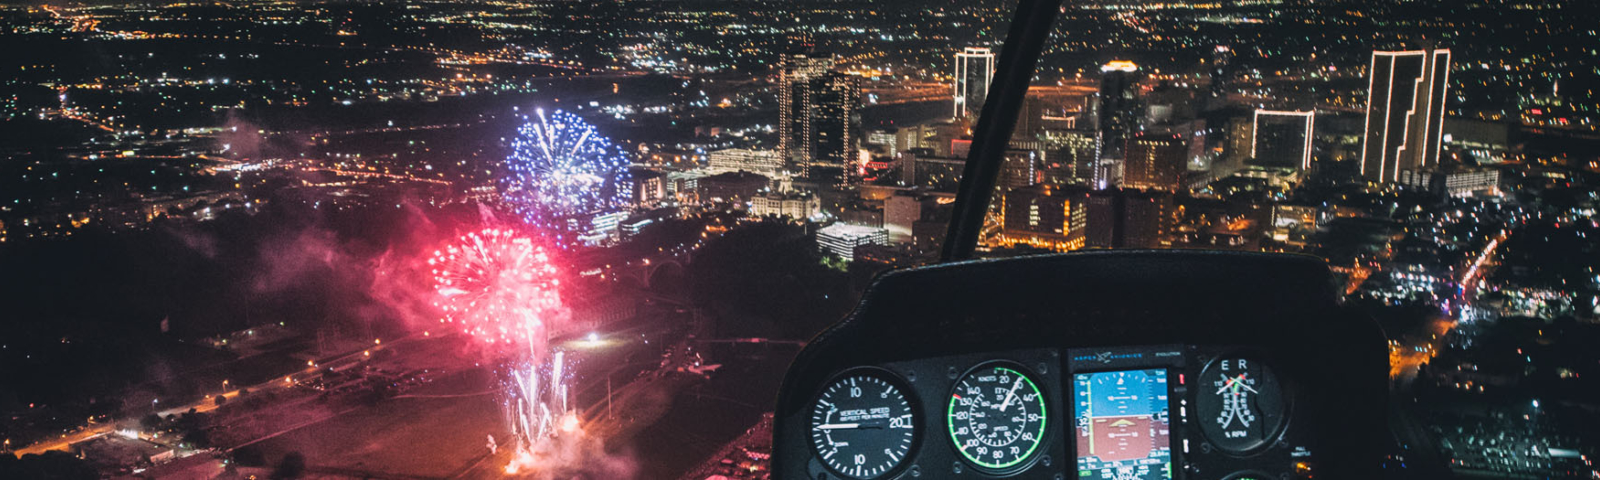 Helicopter Tours Ride Fireworks